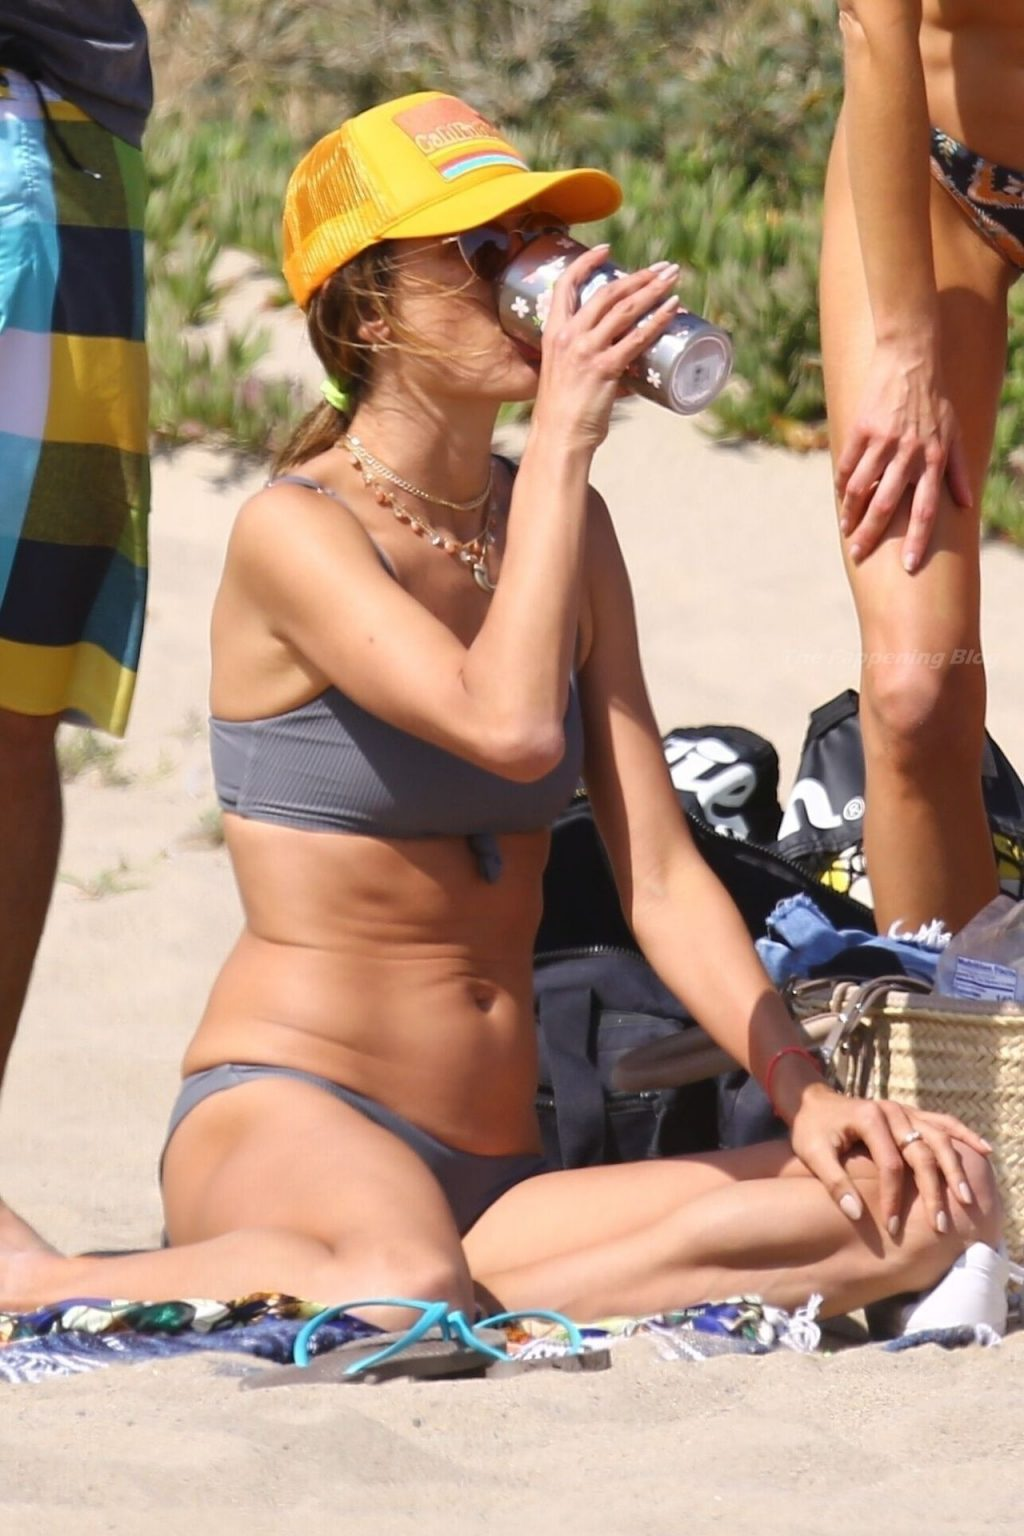 Alessandra Ambrosio Flaunts Her Slim Figure on the Beach with Friends (131 New Photos)